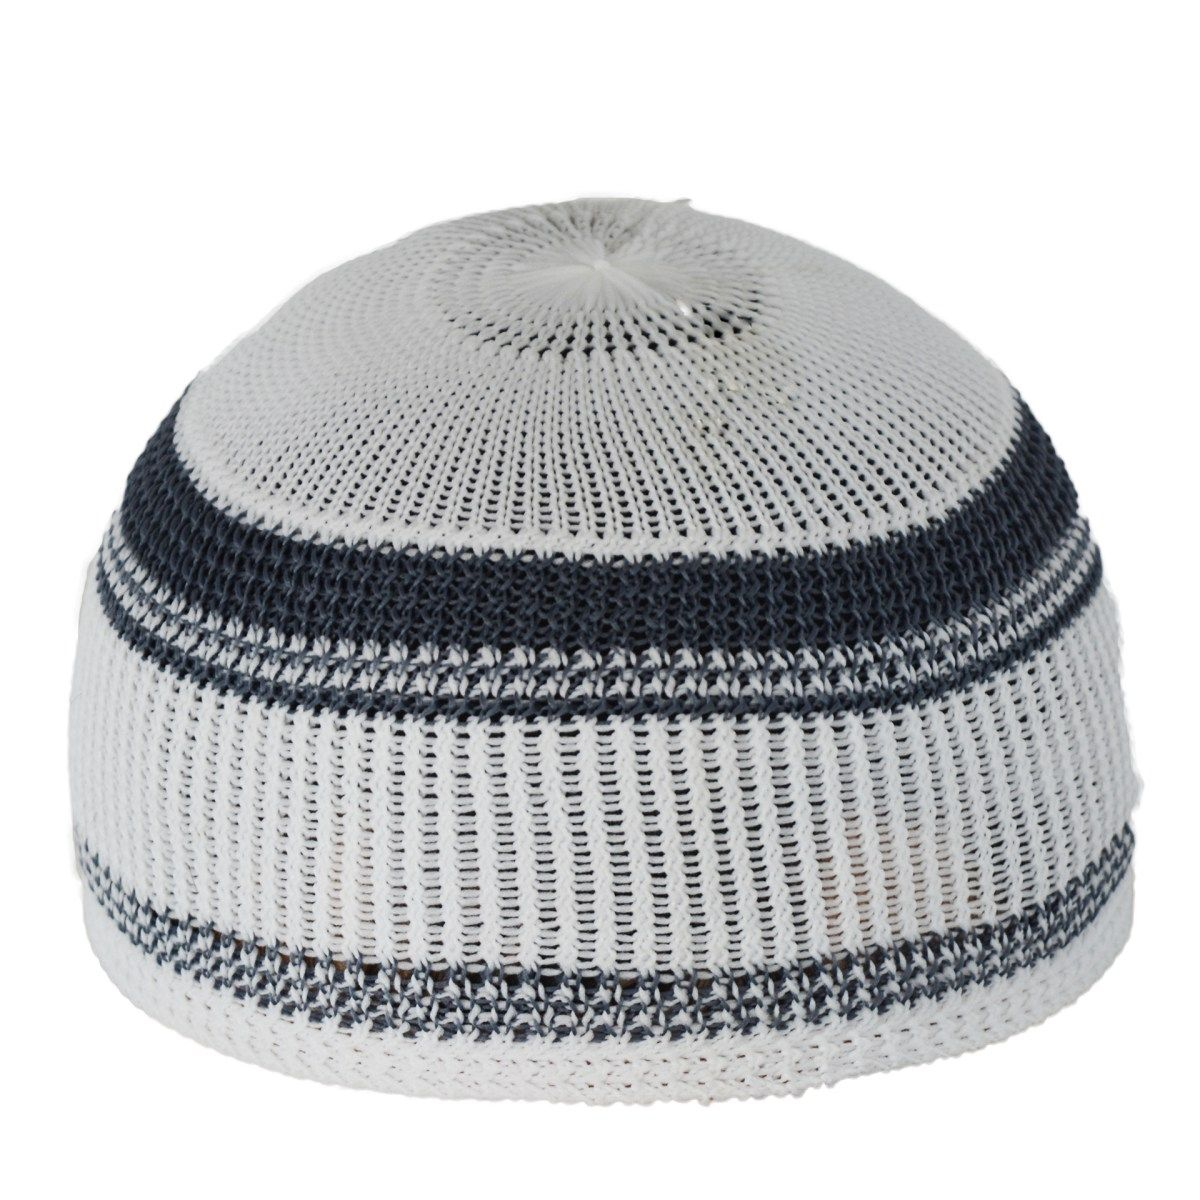 Knitted kufi with thin solid color lines me717 islamic knitted kufi with thin solid color lines me717 bankloansurffo Choice Image